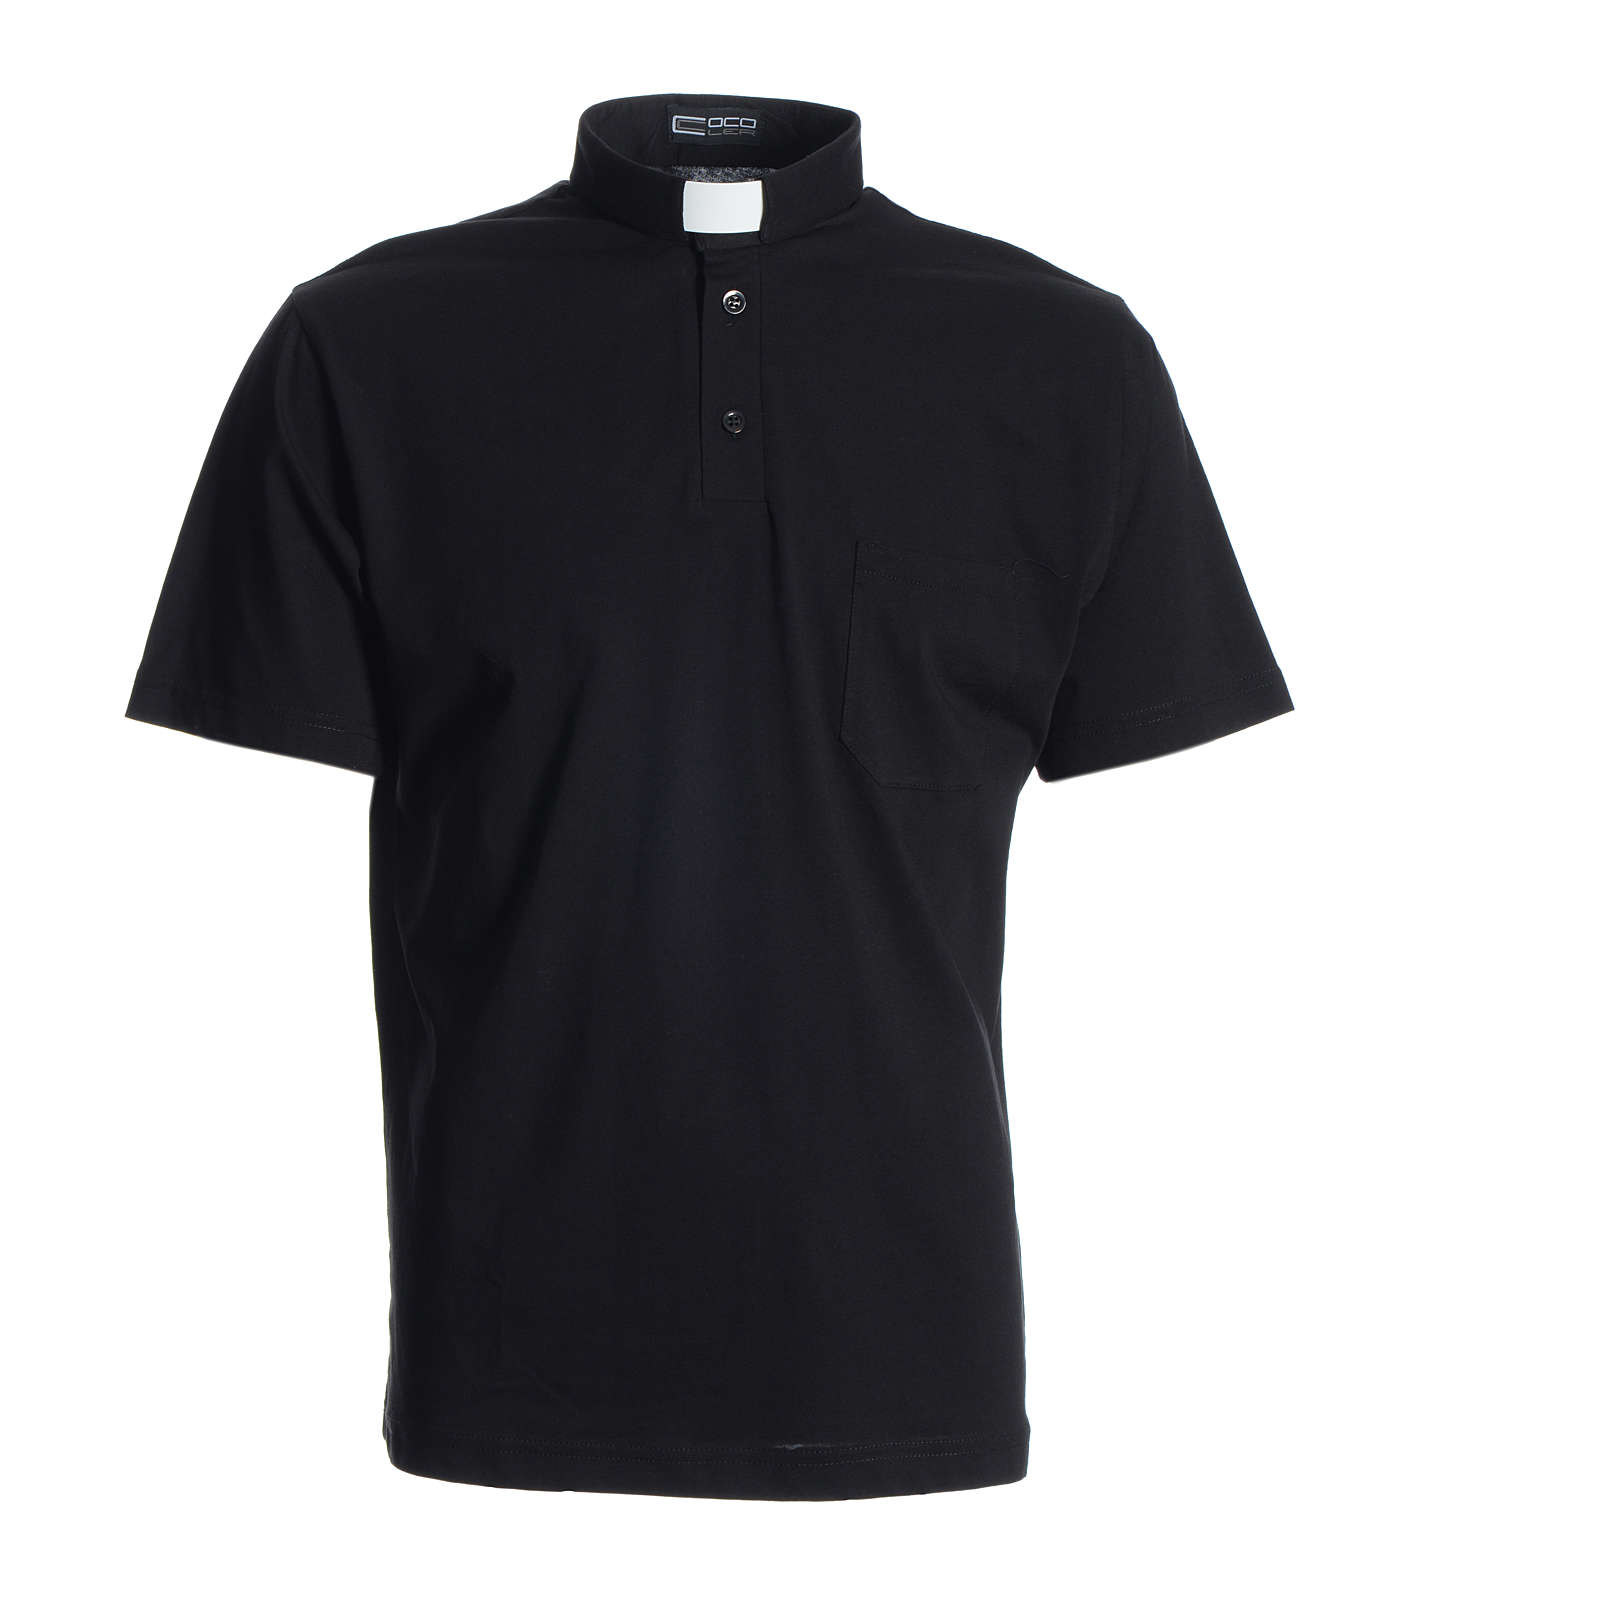 Black Pastor polo shirt, 100% cotton 4